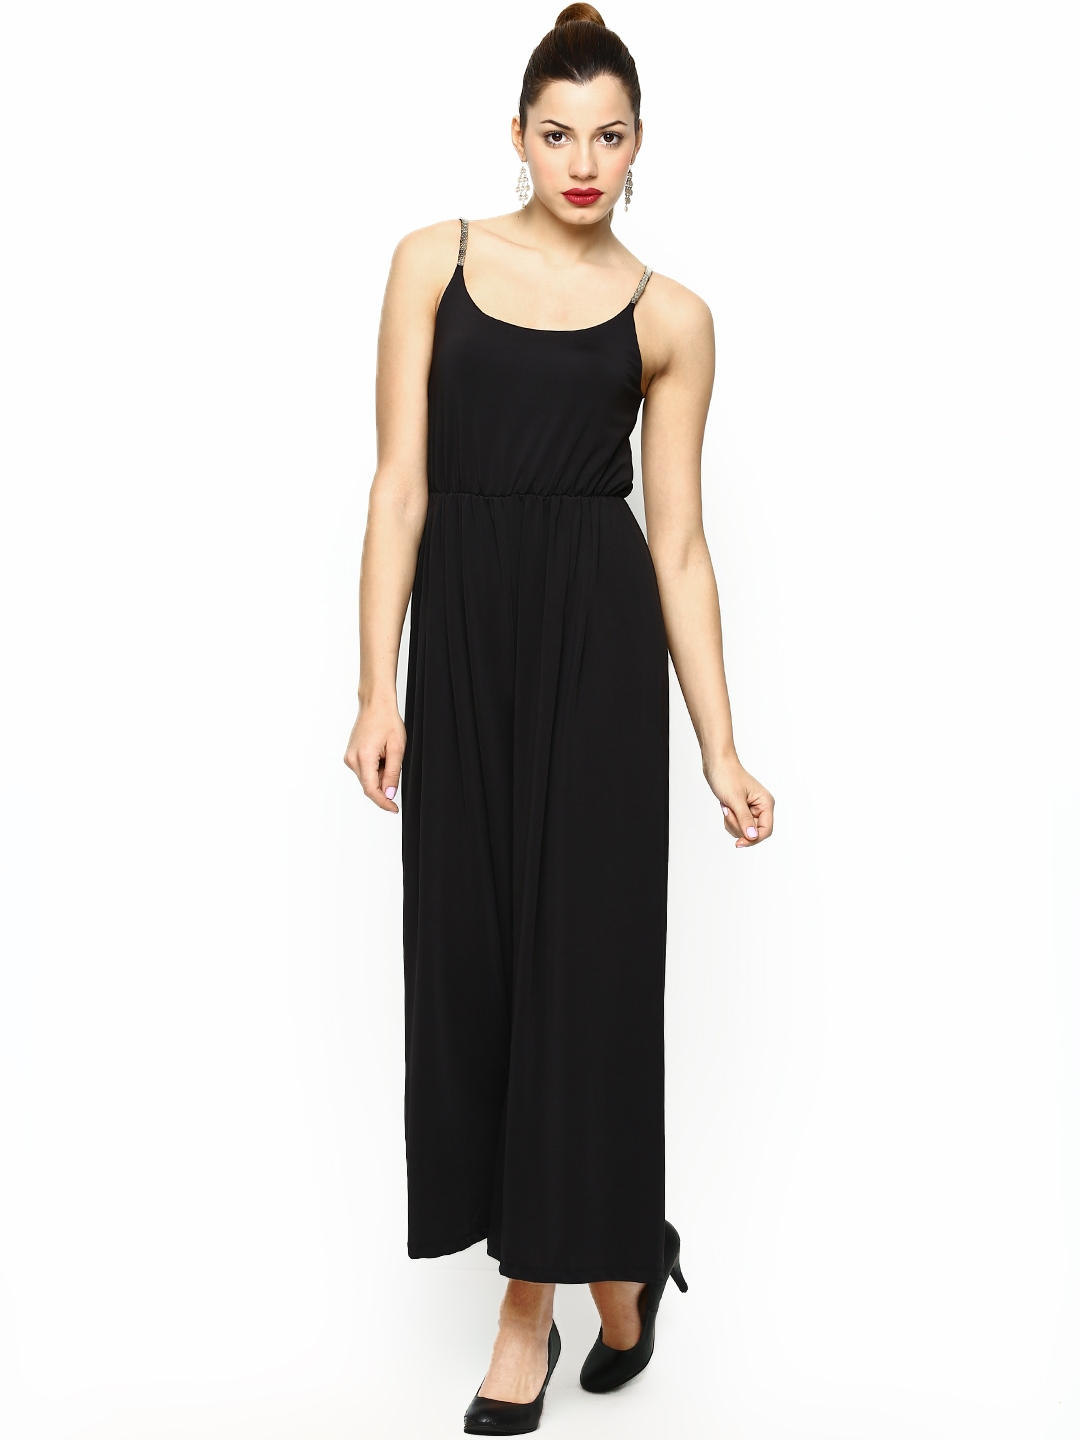 myntra vero moda women black jumpsuit 559830 buy myntra vero moda jumpsuit at best price. Black Bedroom Furniture Sets. Home Design Ideas